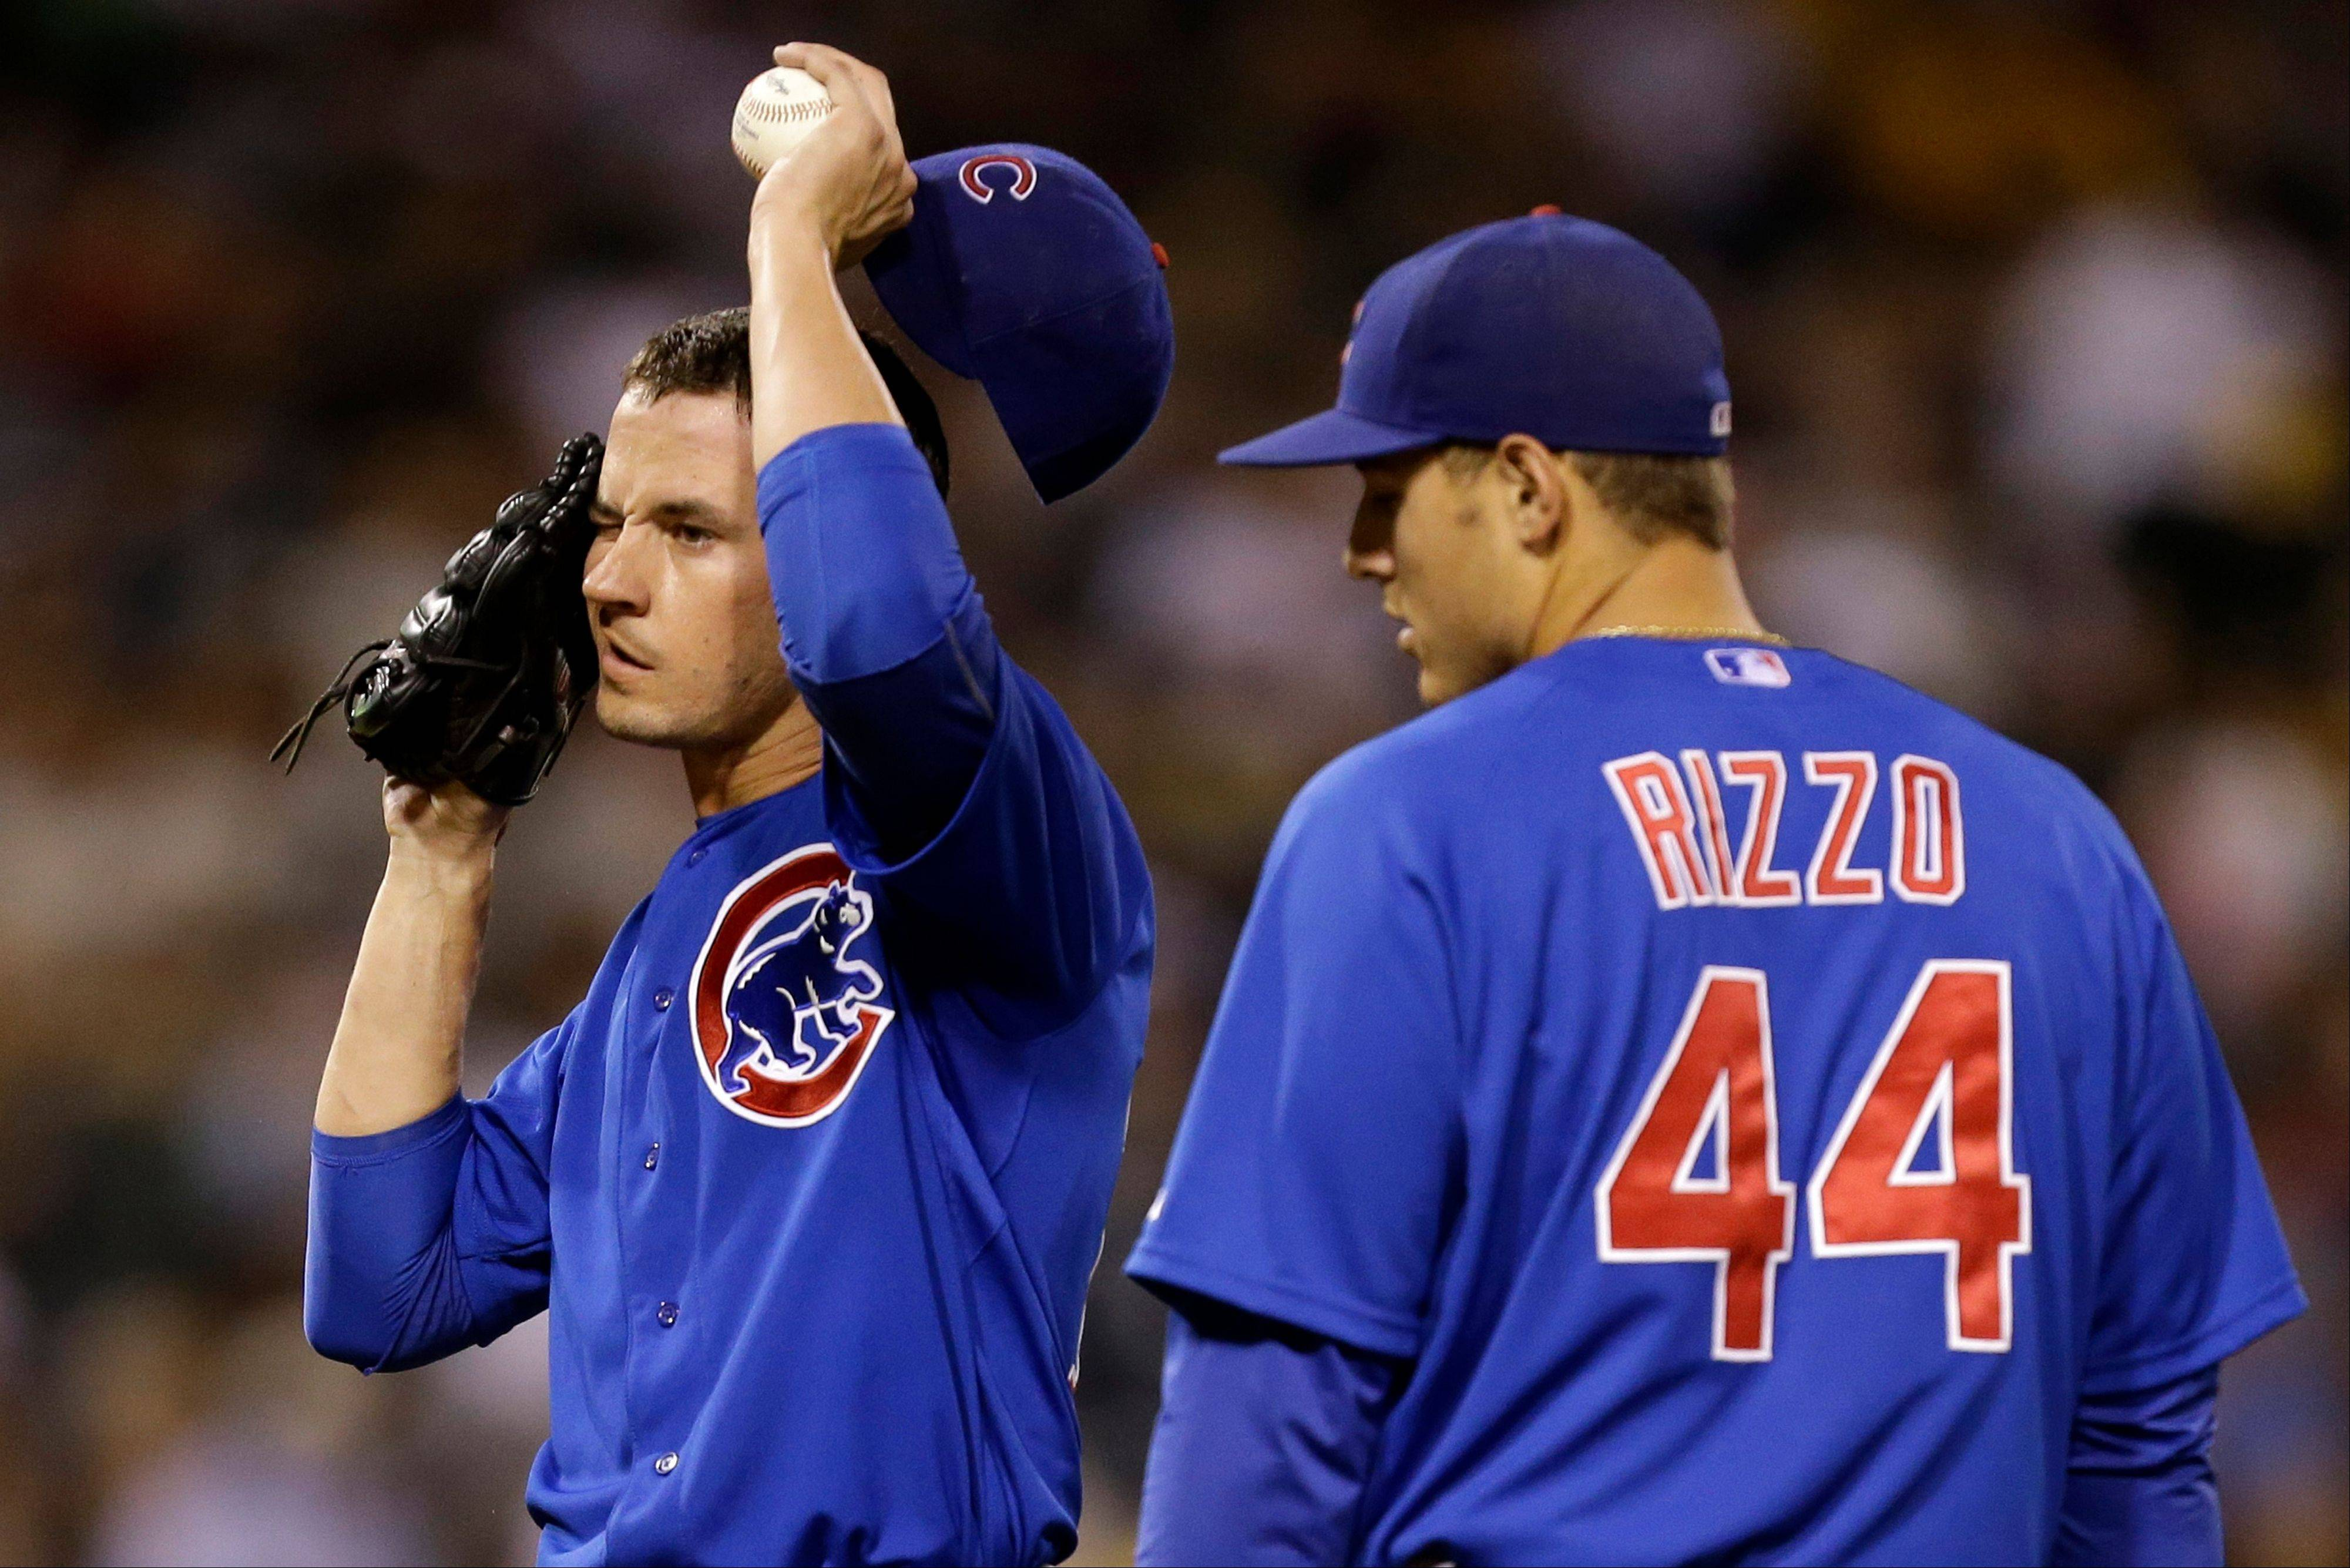 Cubs starting pitcher Chris Rusin is visited on the mound by first baseman Anthony Rizzo after giving up an RBI single to Pittsburgh's Pedro Alvarez in the fourth inning Thursday night.